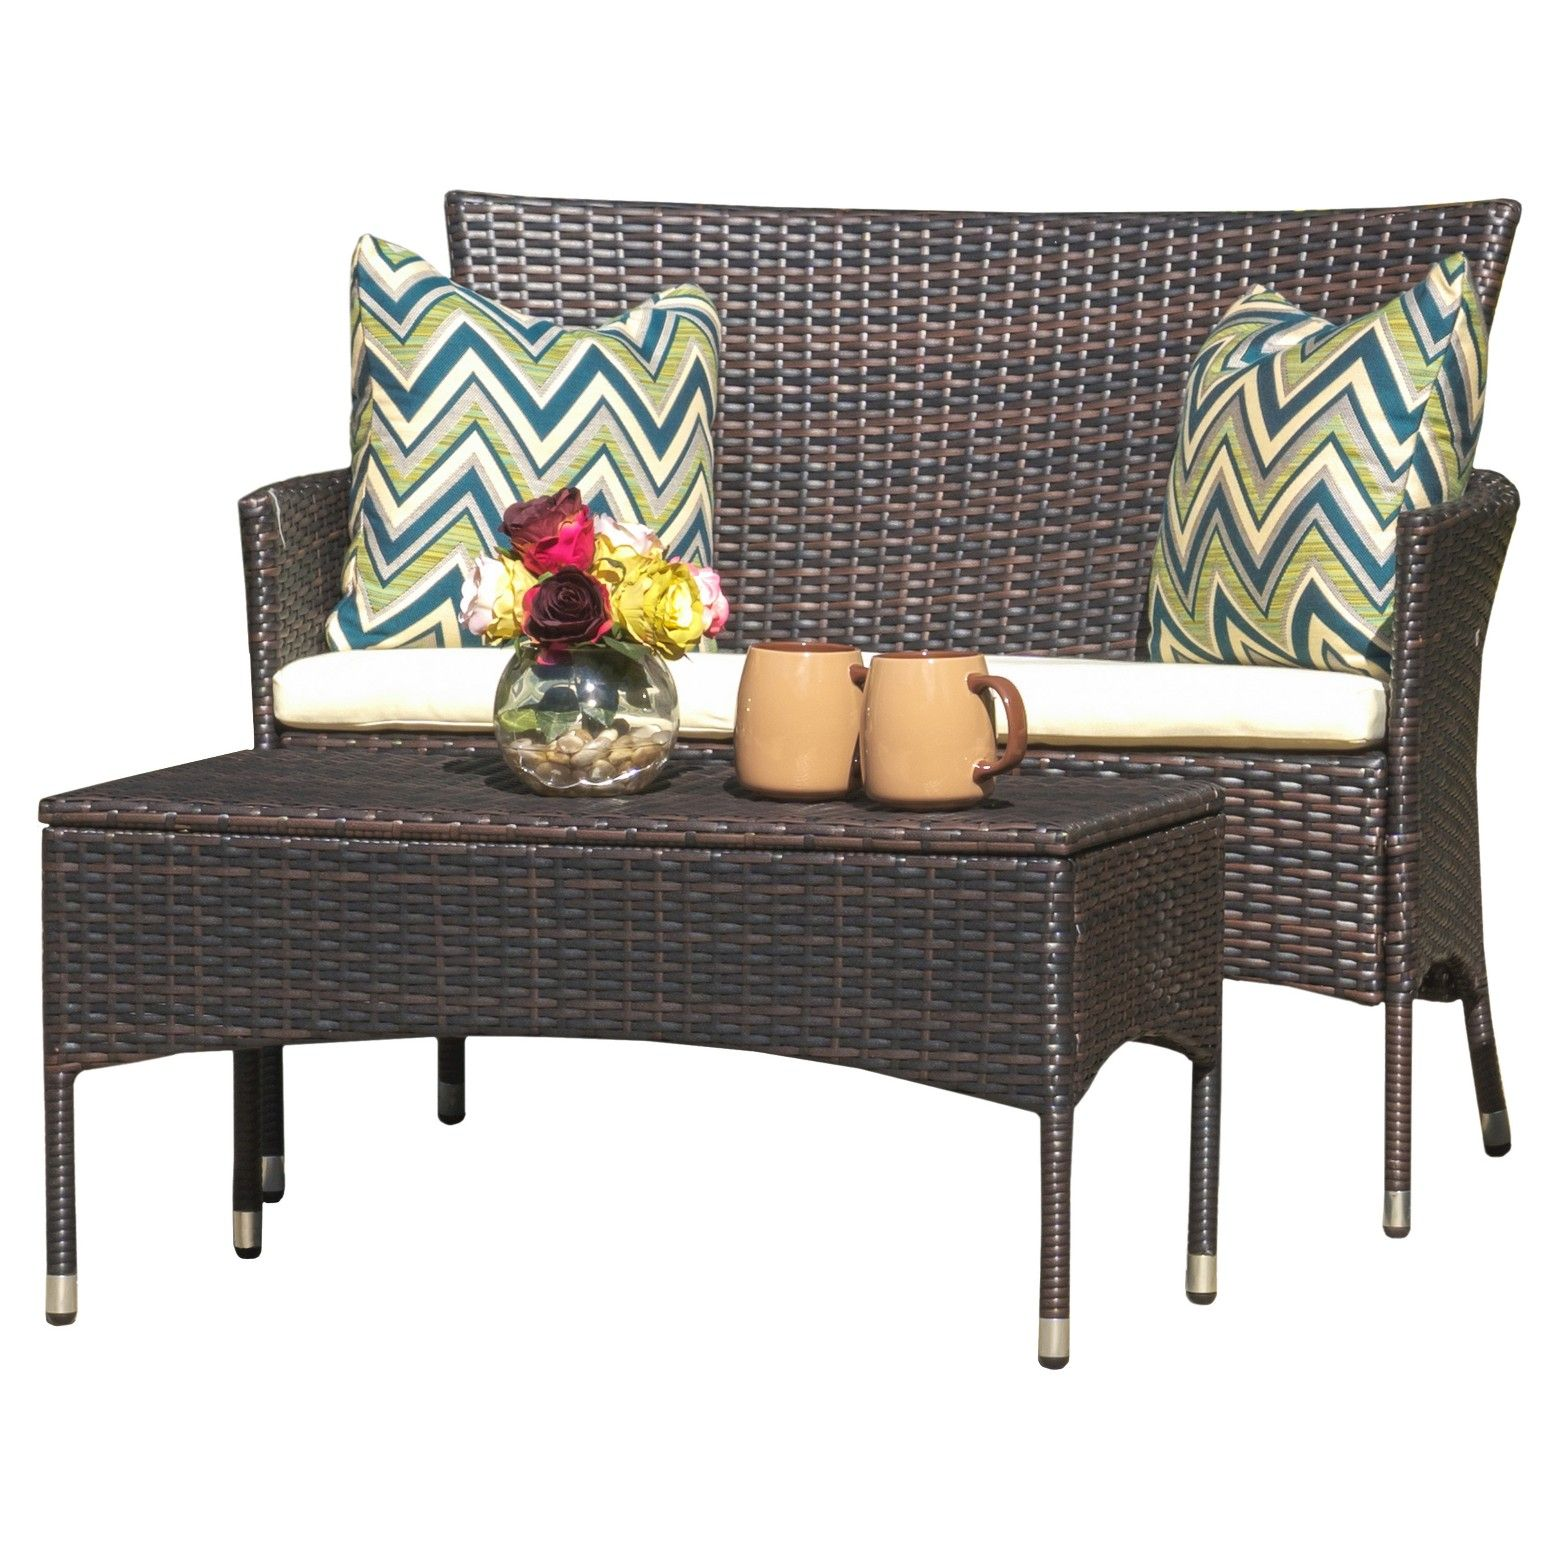 Christopher Knight Home Malta 2pc Outdoor Seating Set